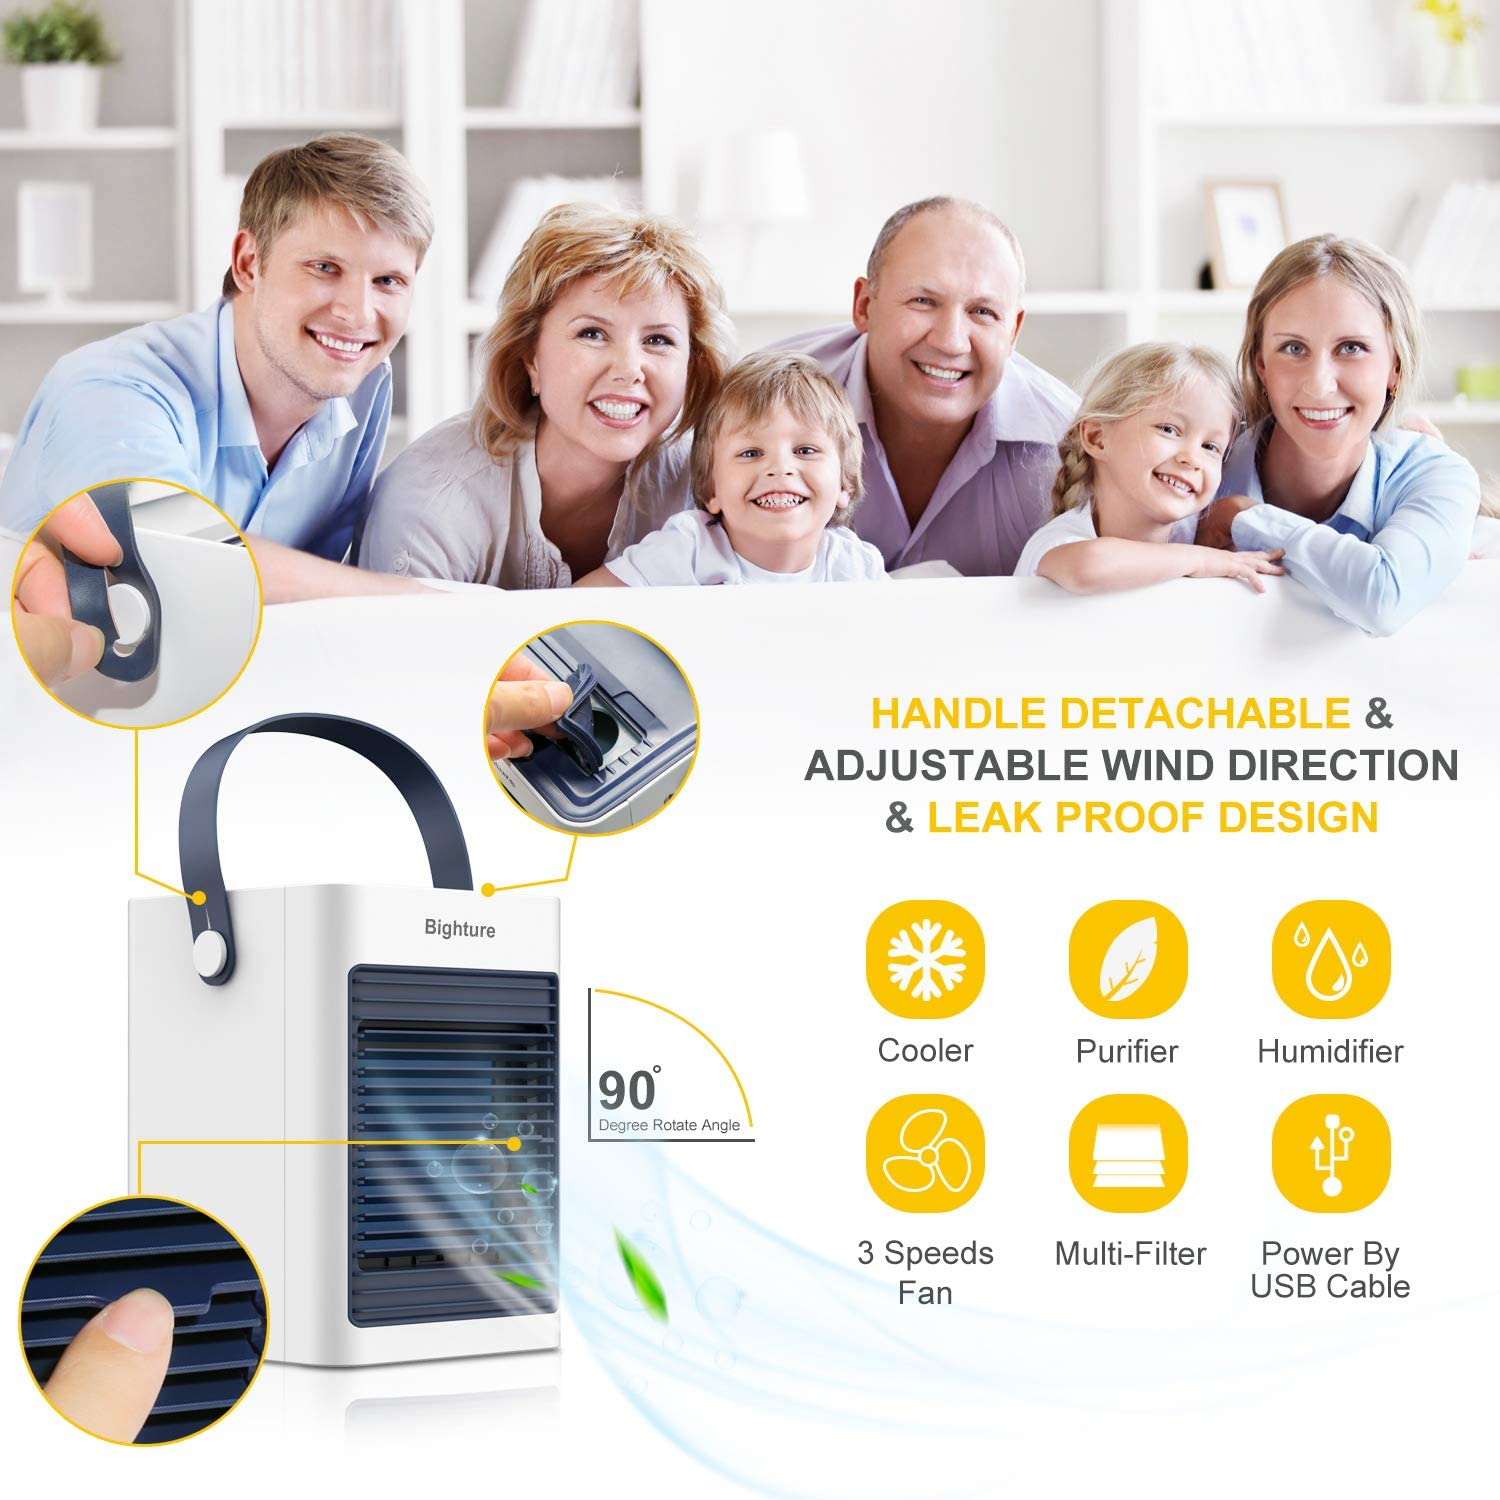 Not Include Battery) Air Conditioner Fan,USB Portable Air Cooler Small Desktop Cooling Fan Humidifier Purifier Noiseless Evaporative Air Humidifier for Room Office Desktop Nightstand